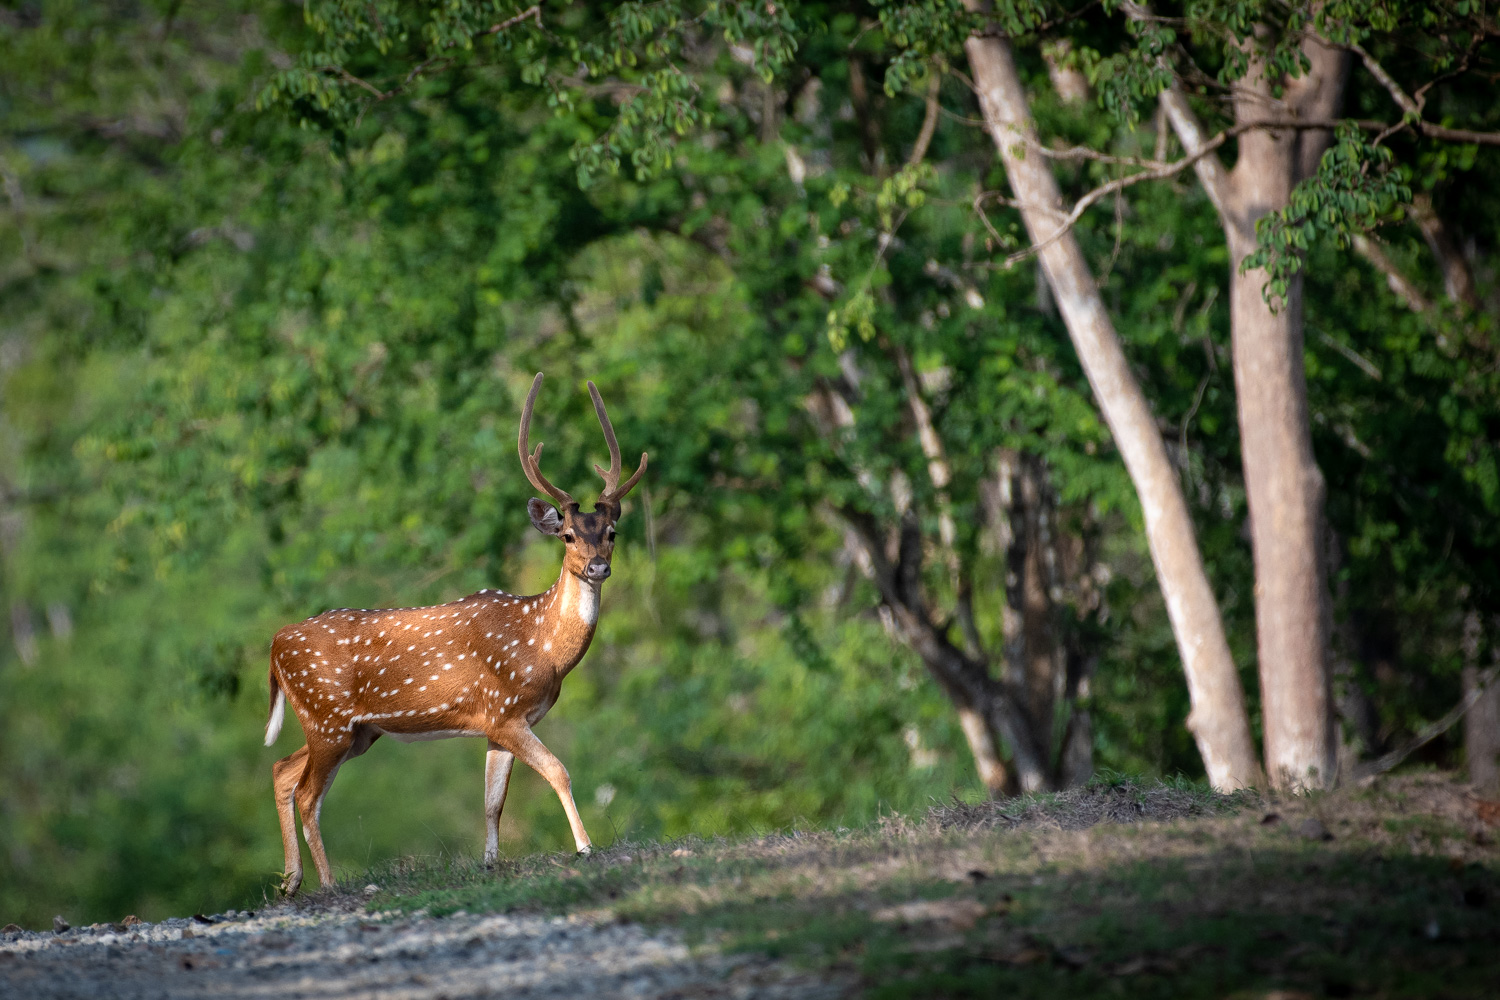 Image: Deer crossing the safari track. The camera's focus performance for distant objects is excelle...